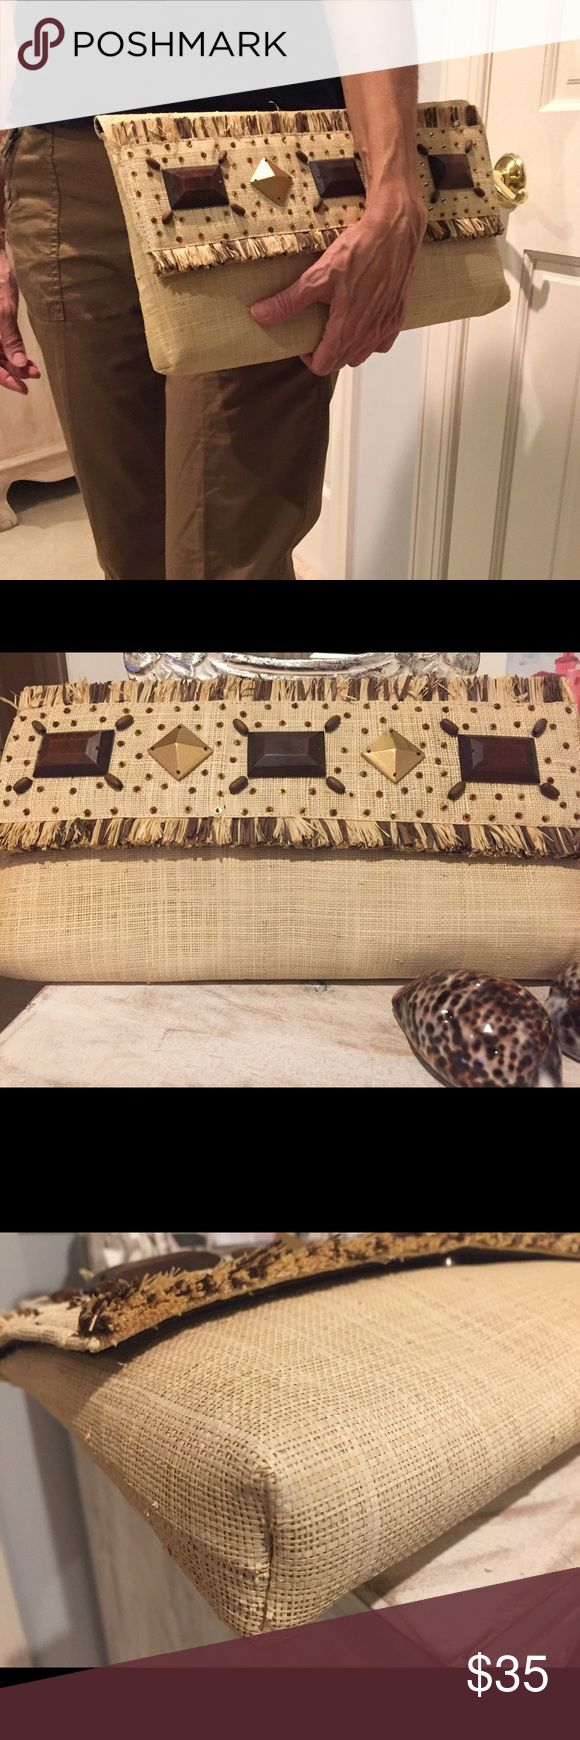 Ratan clutch bag with beaded detail Banana republic clutch. Great neutral bag in mint condition. Brown & gold beaded detail makes this a timeless clutch. Banana Republic Bags Clutches & Wristlets